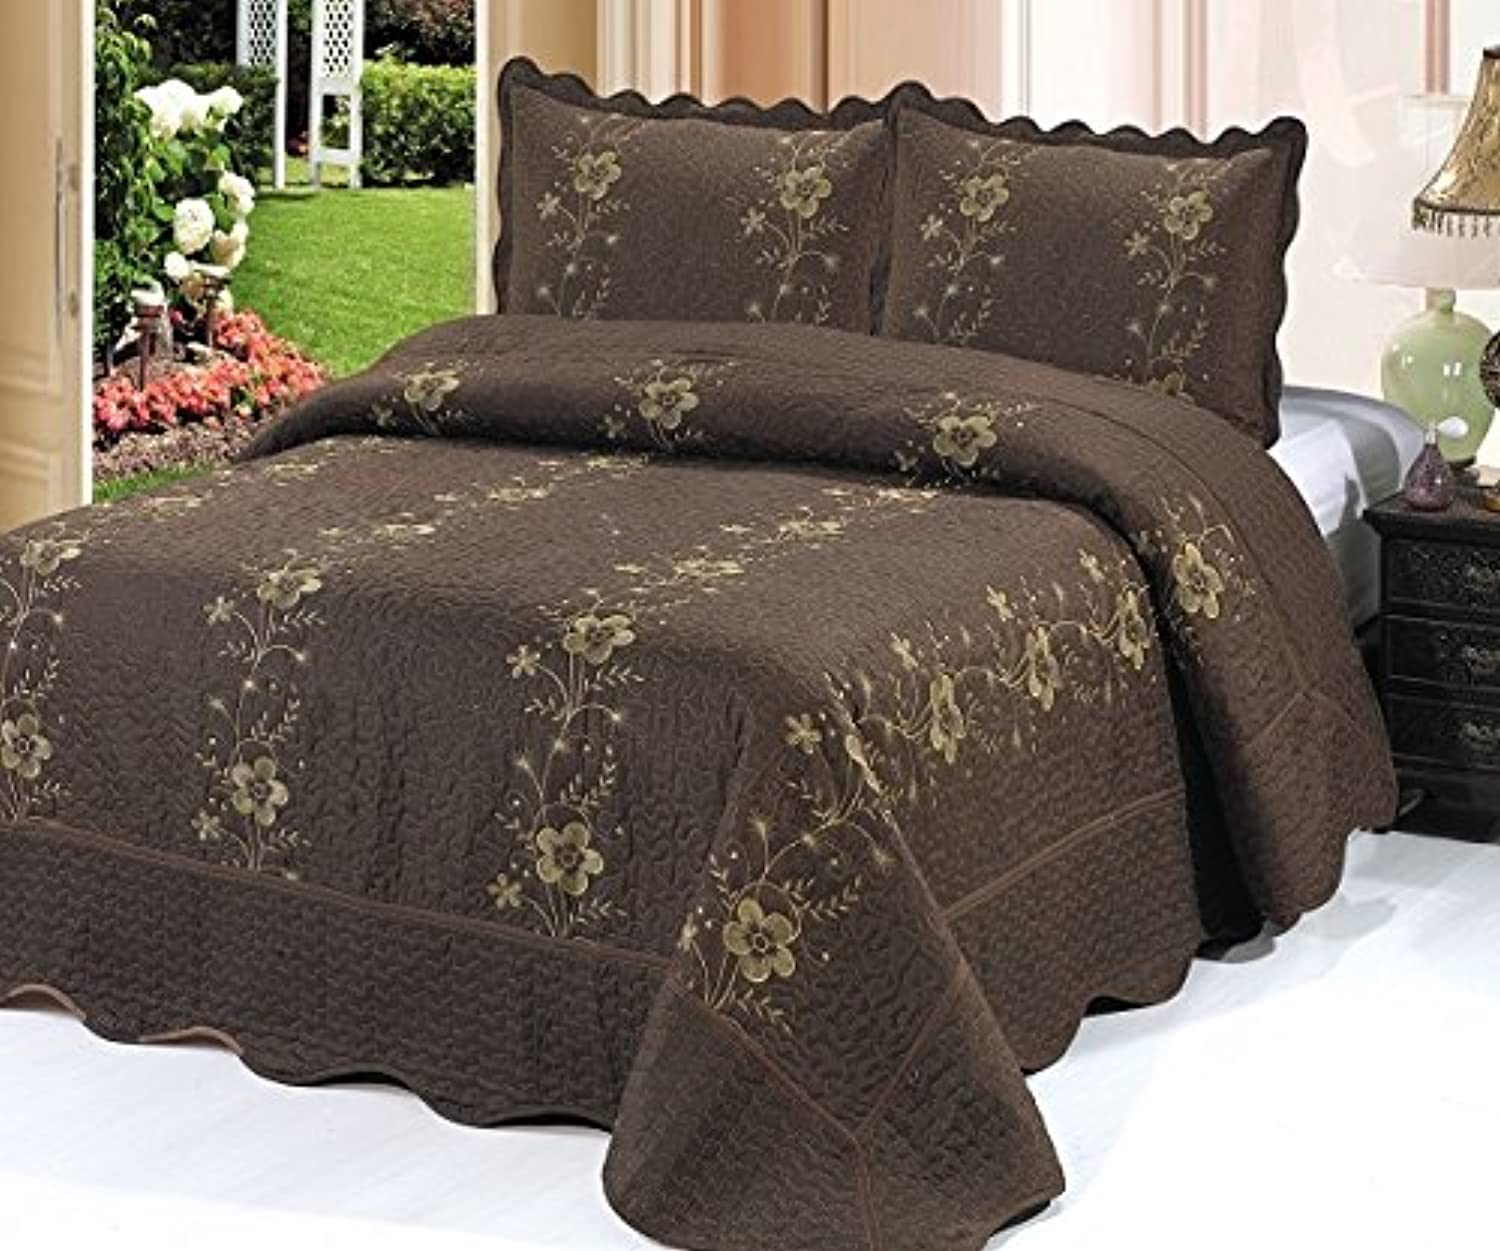 Home Must Haves Queen Set 3 Piece Bedspread Brown Quilt Sham Floral New